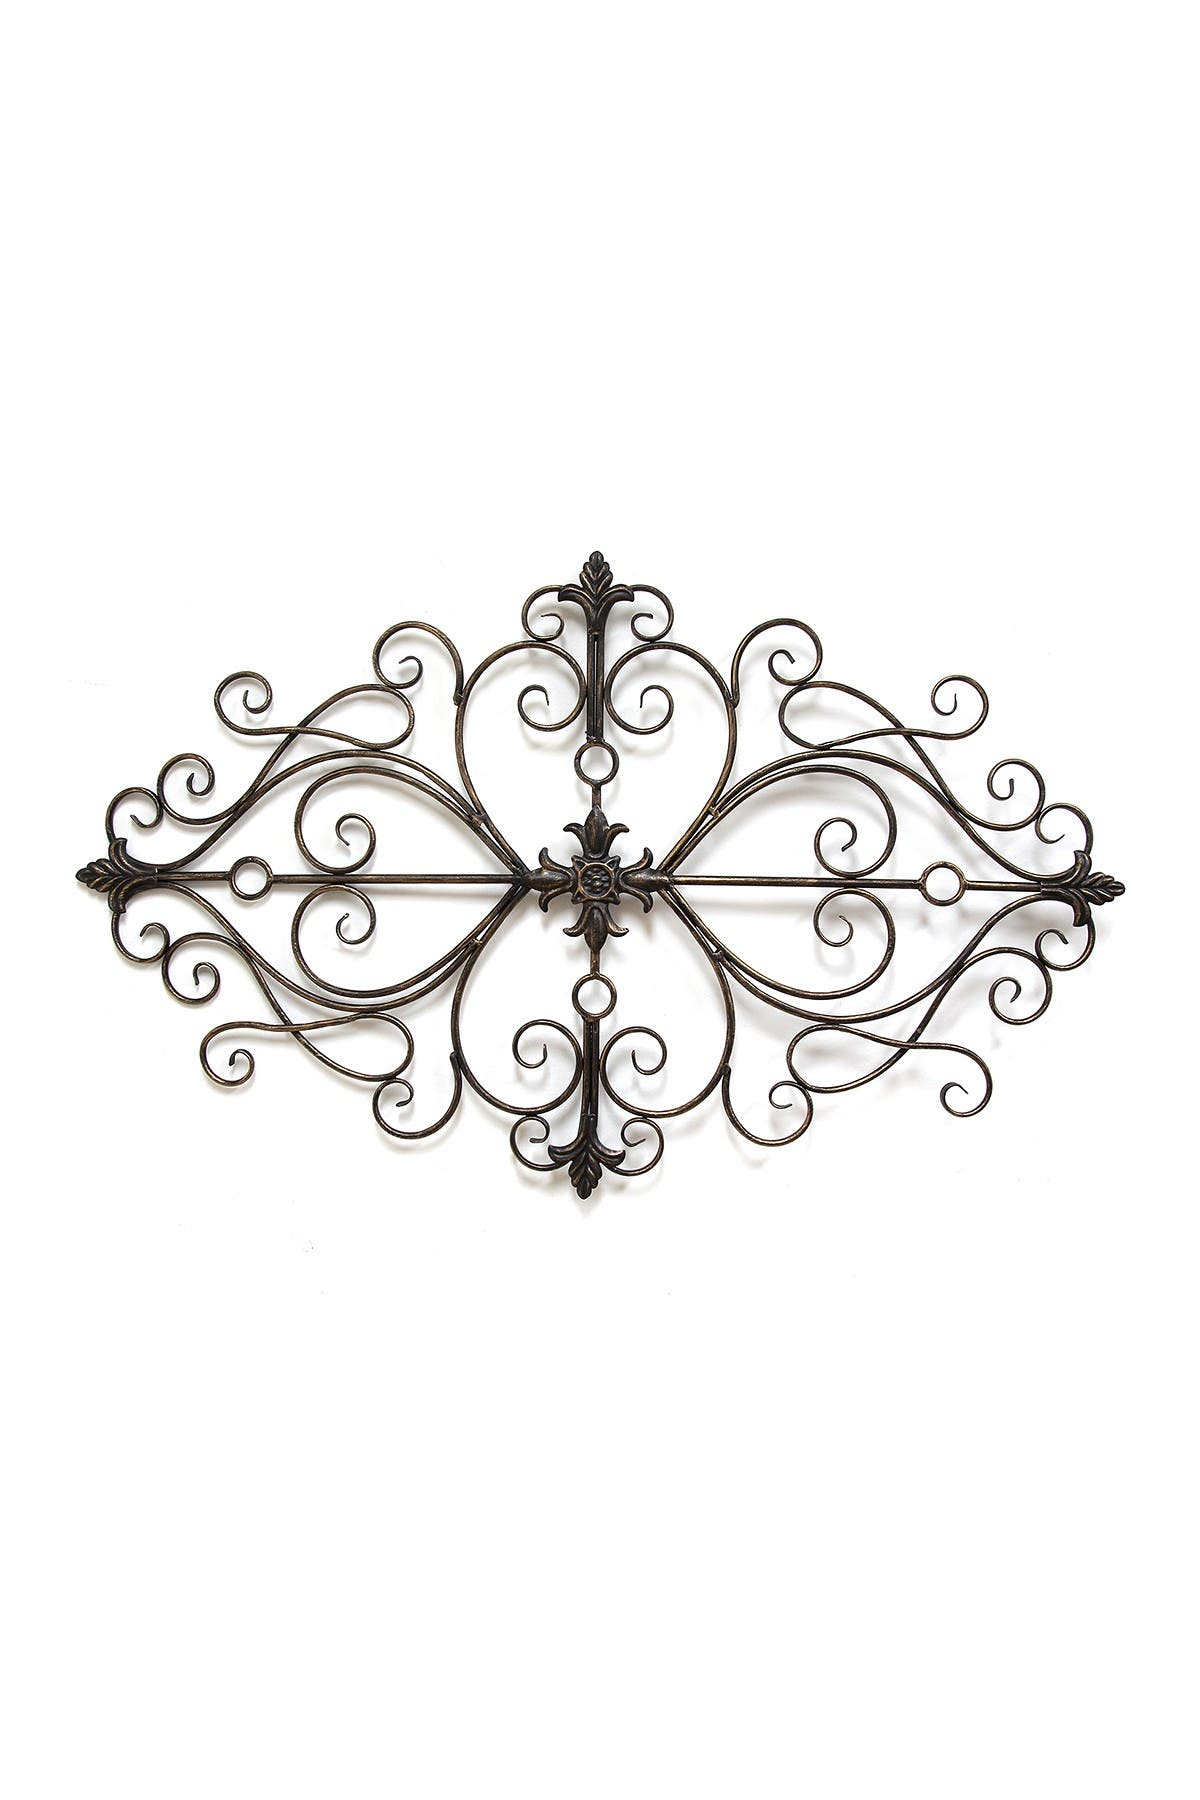 Image of Stratton Home Black Traditional Scroll Wall Decor